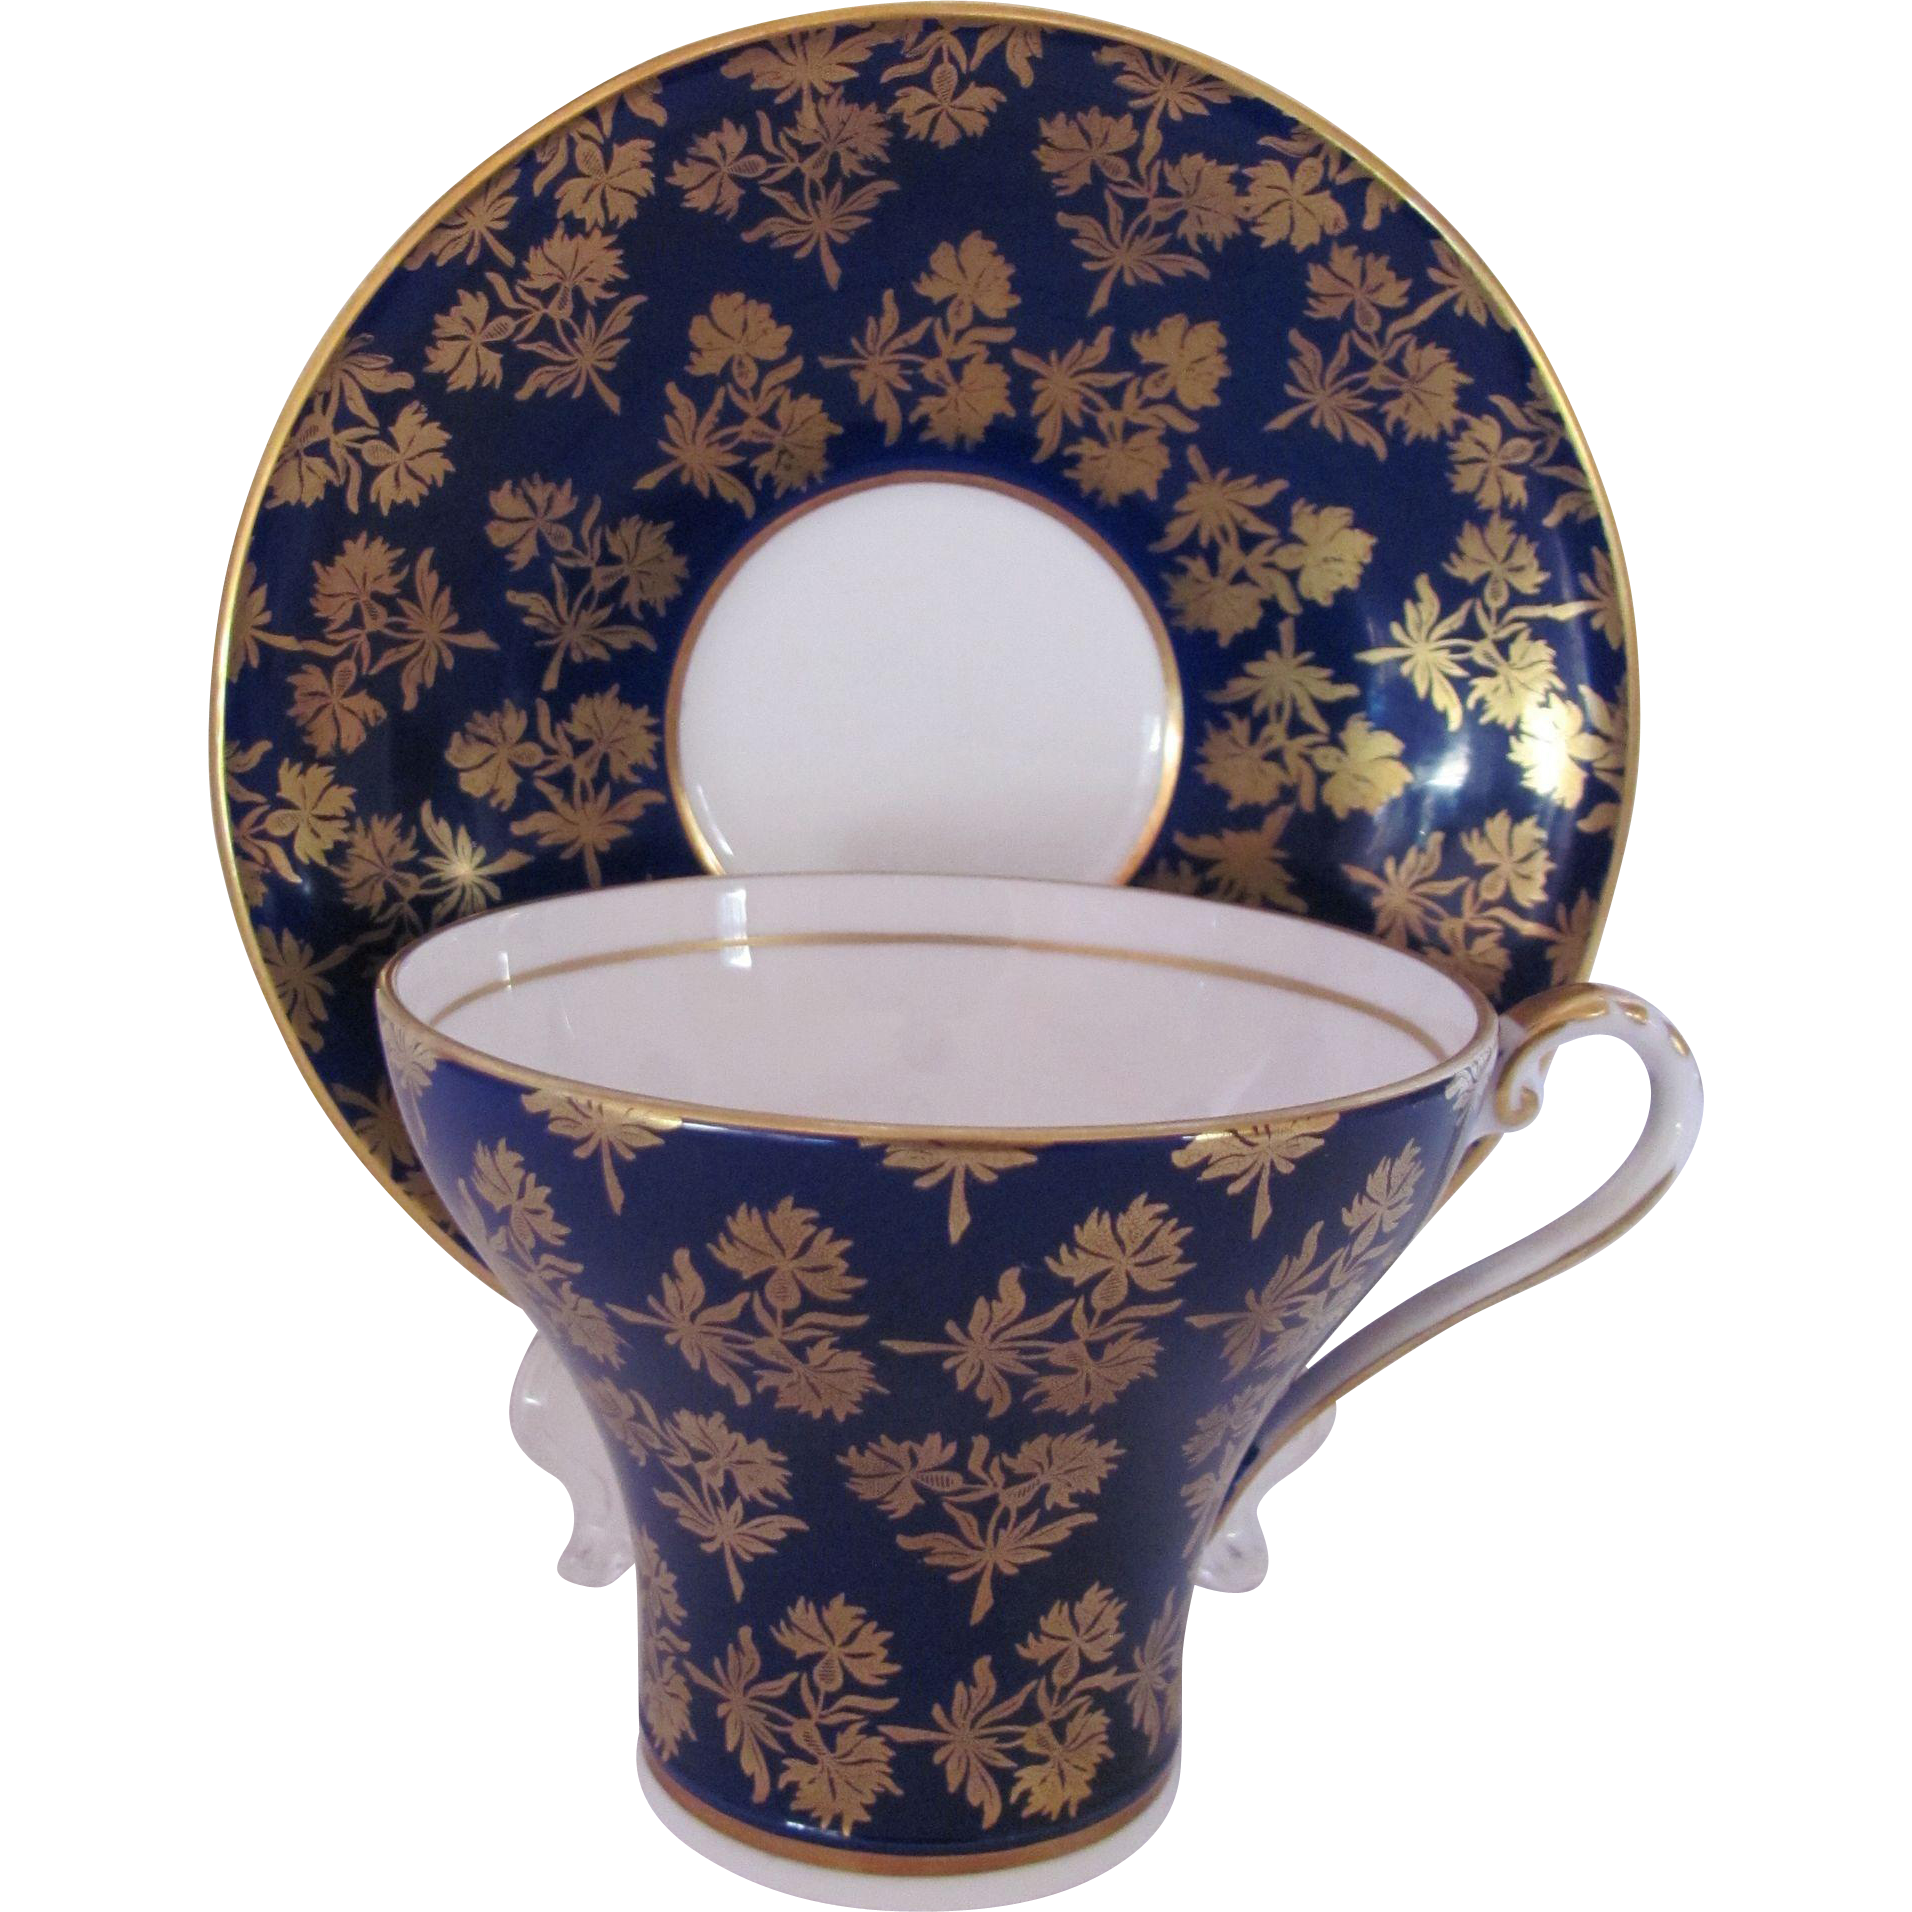 Aynsley Cup Saucer Cobalt Blue Gold Corset Cup #2457 Vintage 1930's